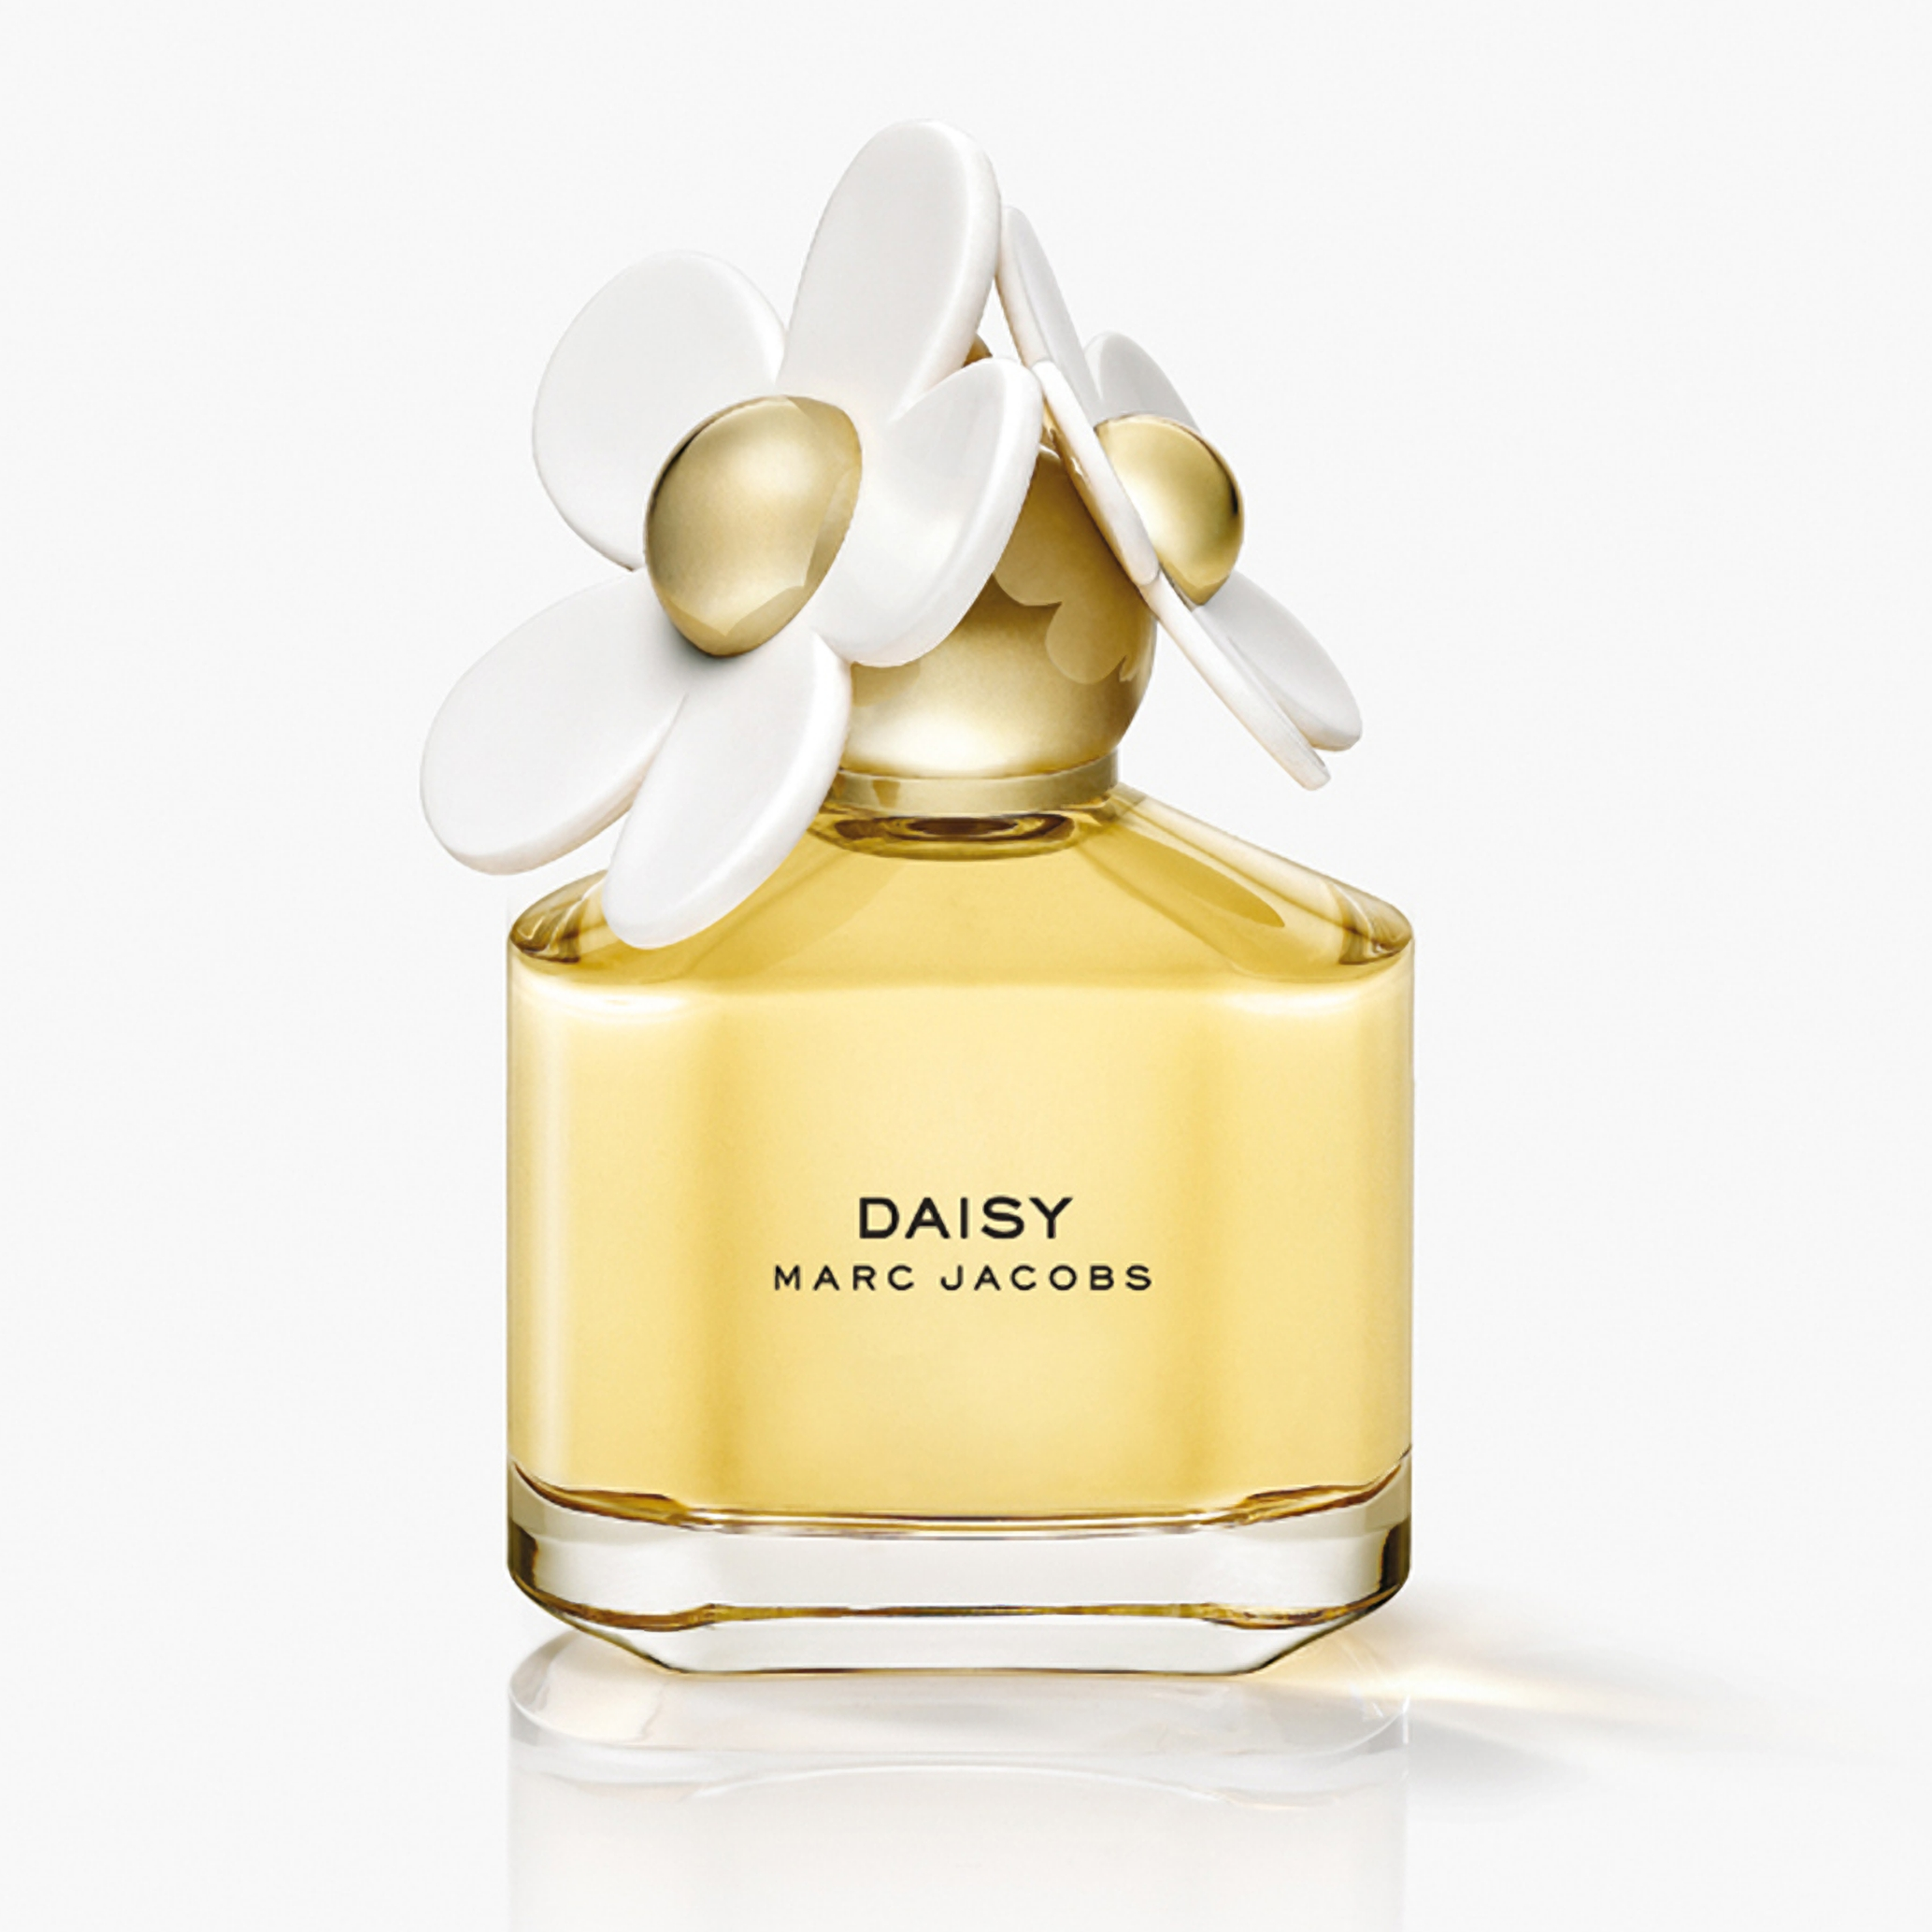 marc jacobs daisy by marc jacobs edt spray 3 4 oz 100 ml. Black Bedroom Furniture Sets. Home Design Ideas